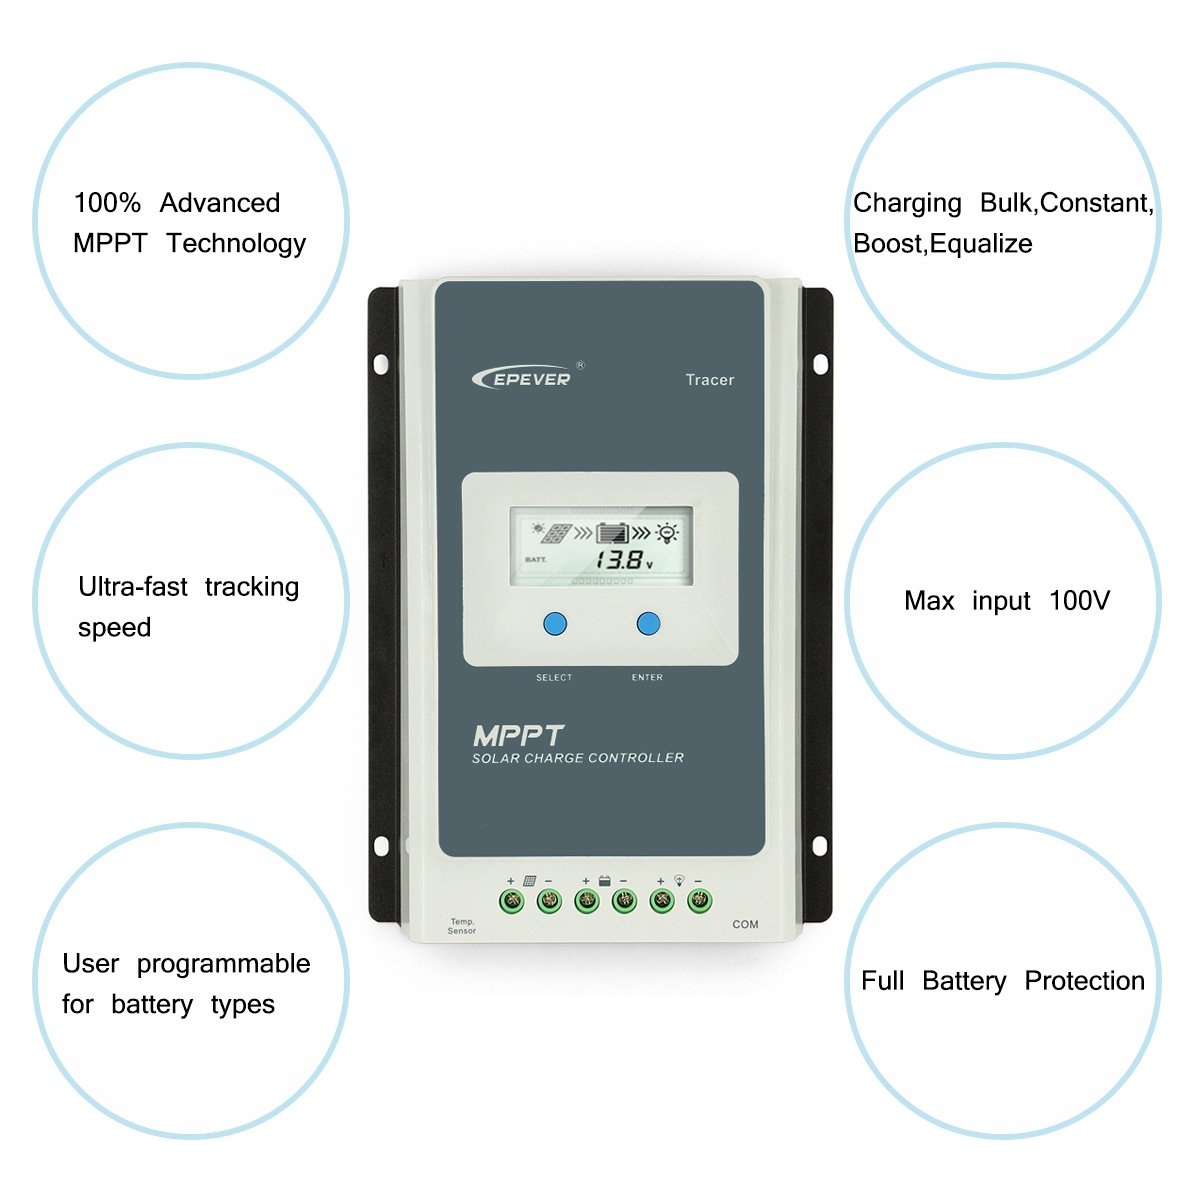 Epever 40a Mppt Solar Charge Controller Tracer A 4210a Series Parallel Wiring For Battery Charging Do You Have Low Wind And Remote Meter Mt 50 With Lcd Display Garden